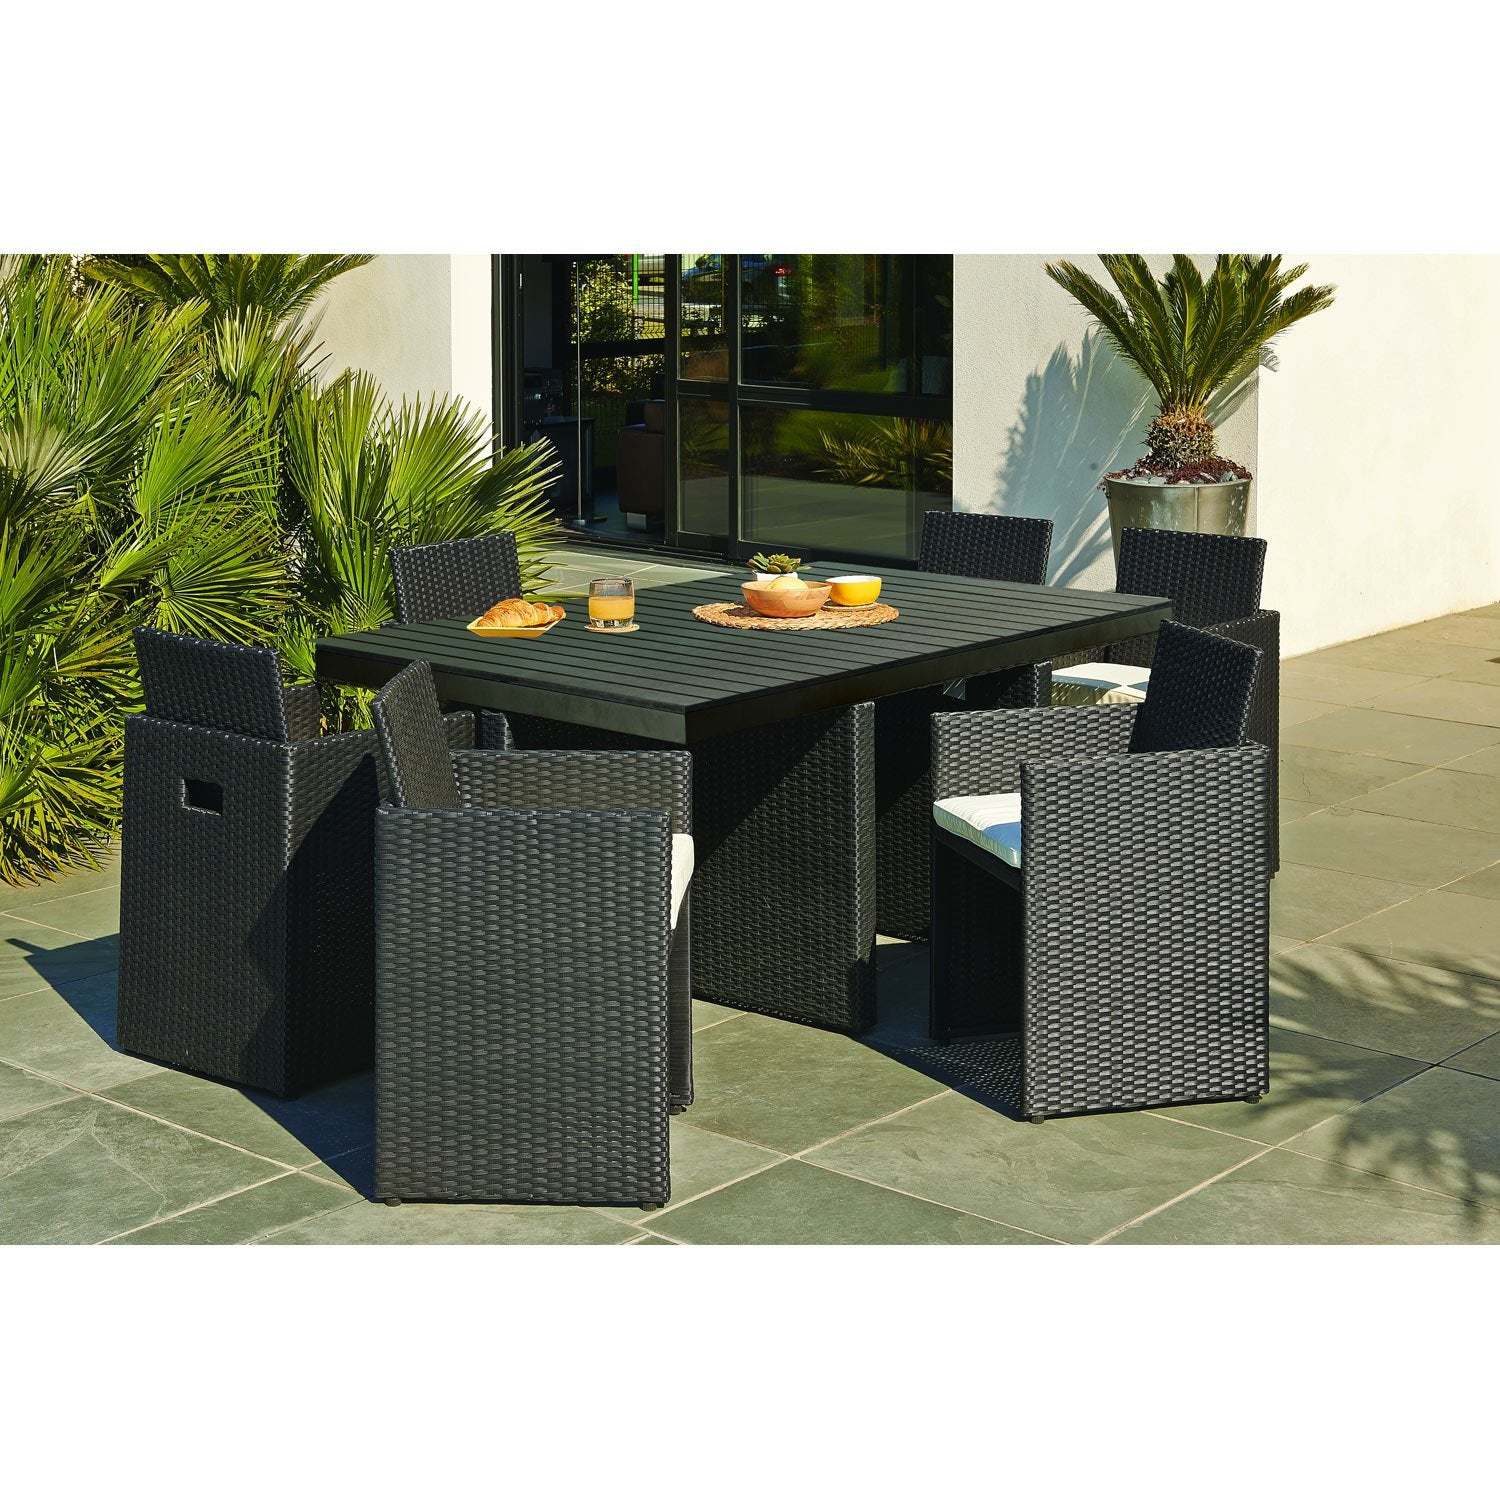 Salon de jardin encastrable r sine tress e noir 1 table for Salon de jardin leroy merlin